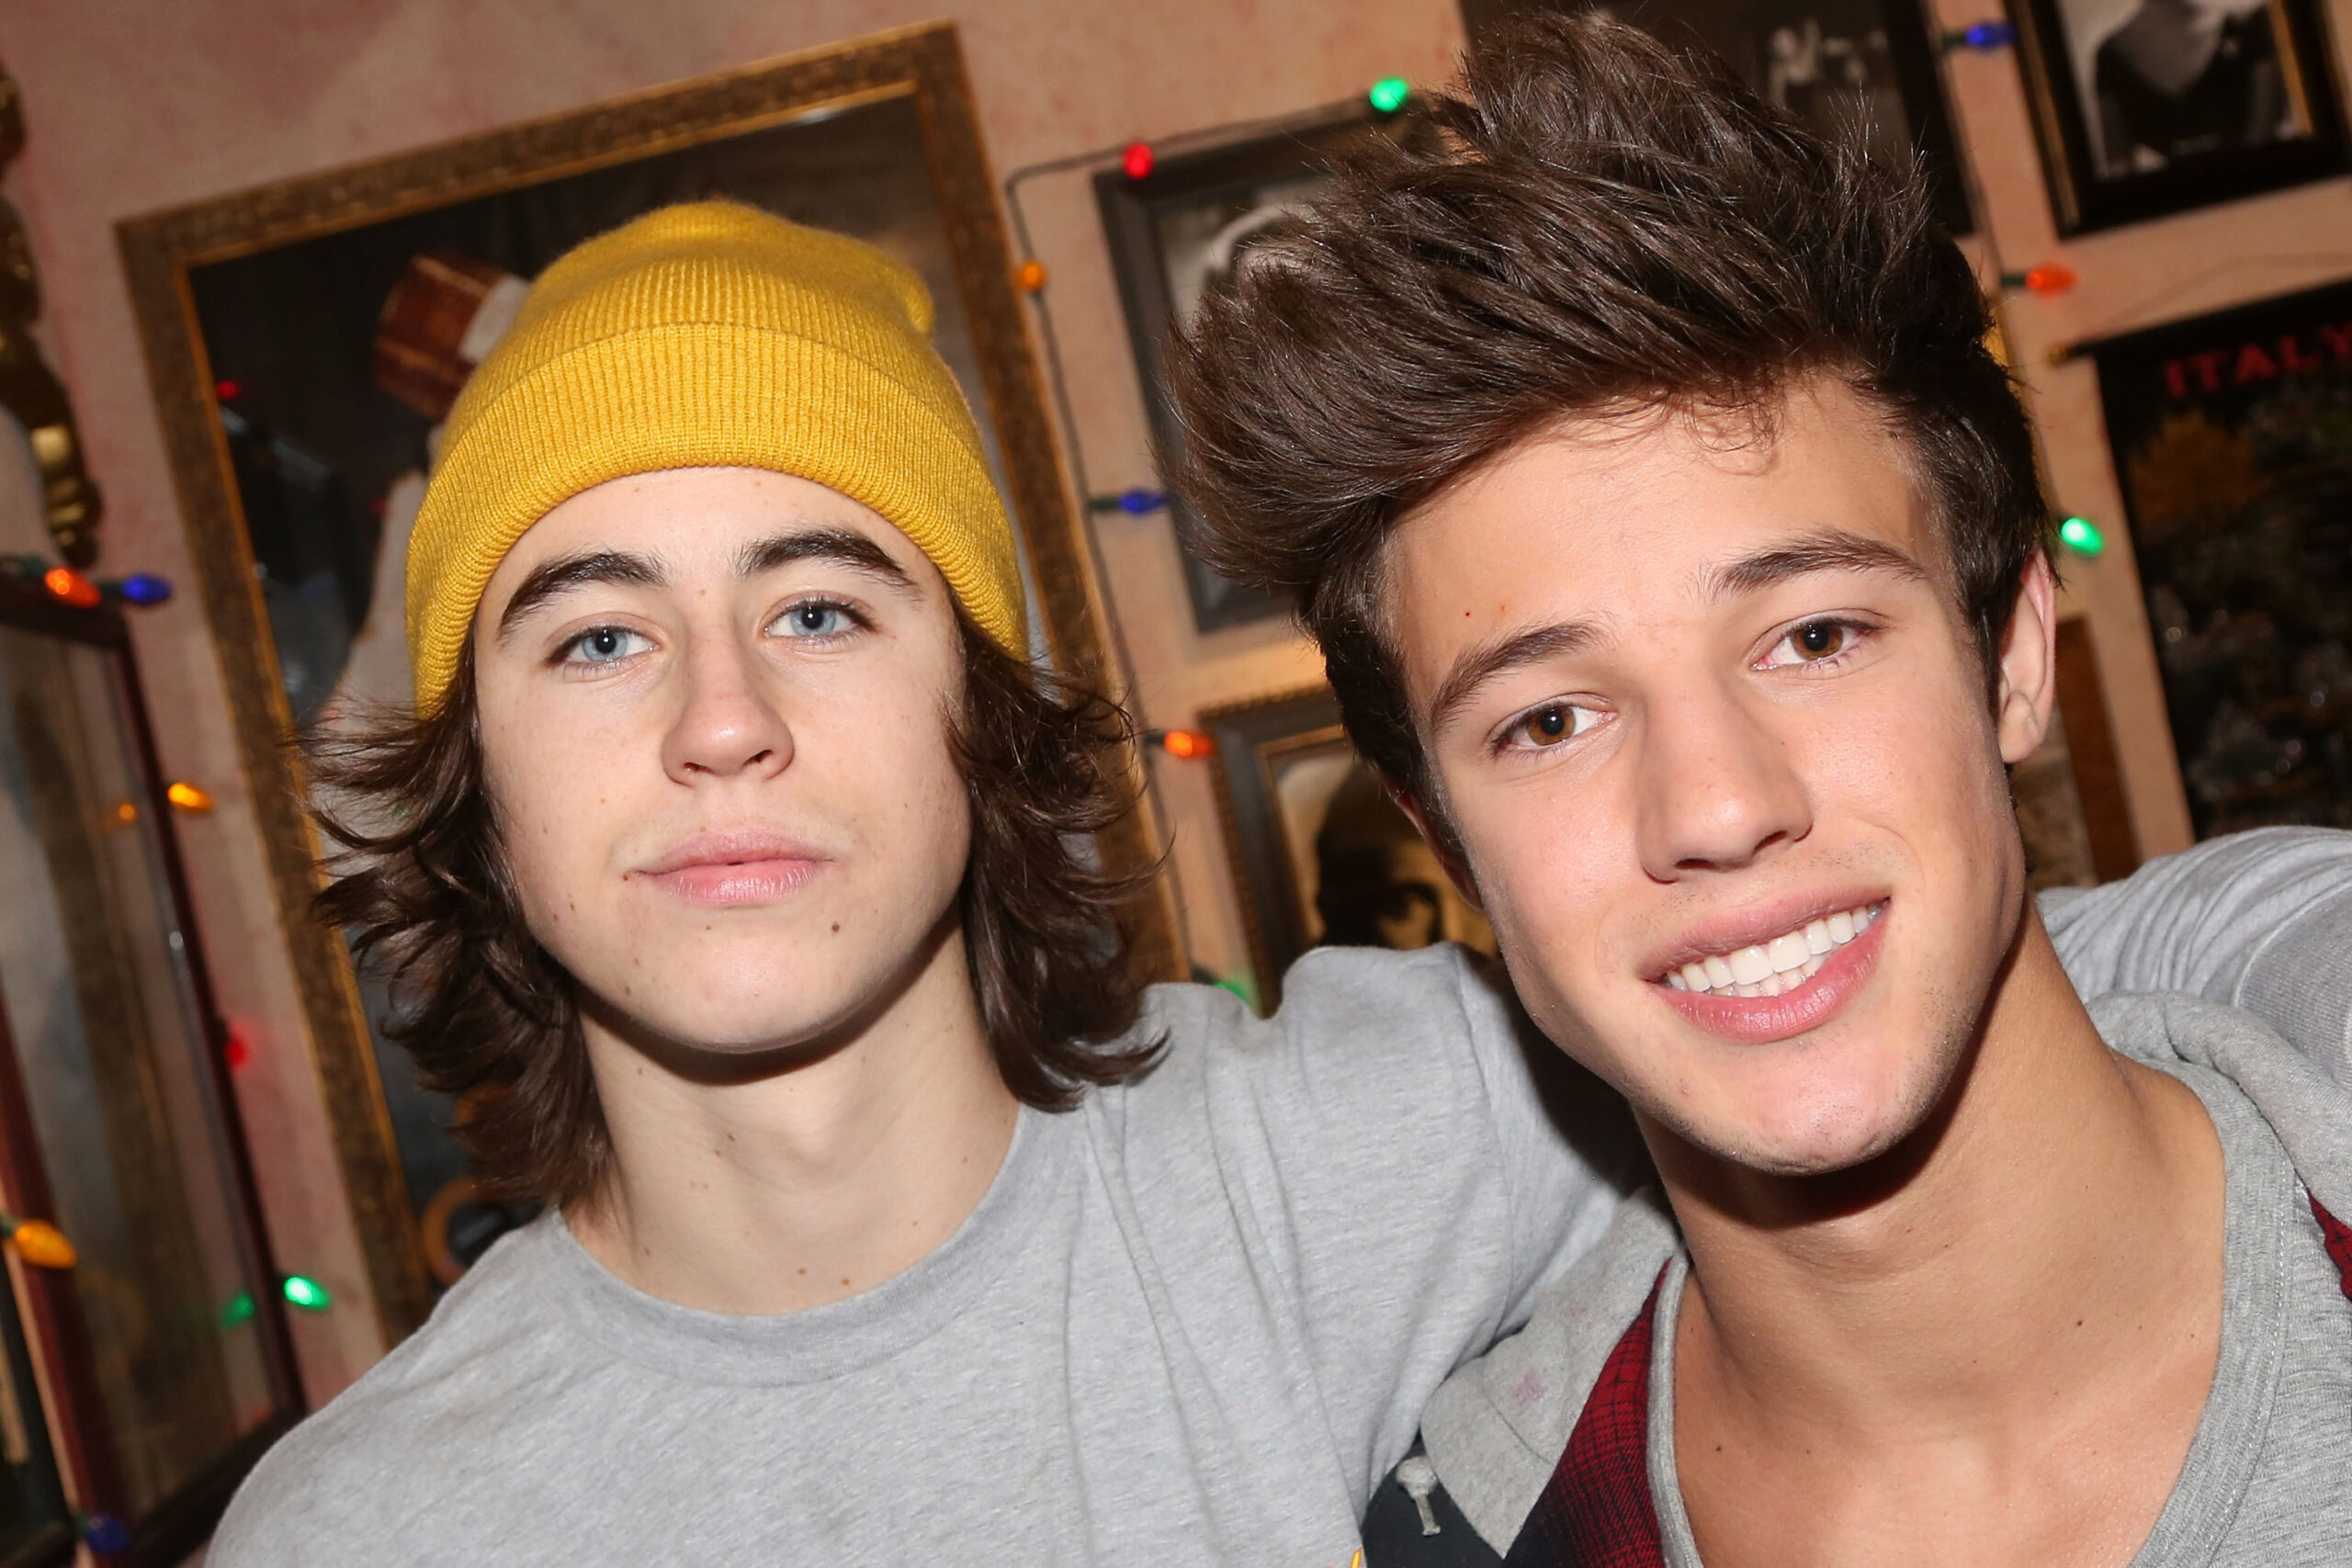 Are Cameron and Nash still friends?